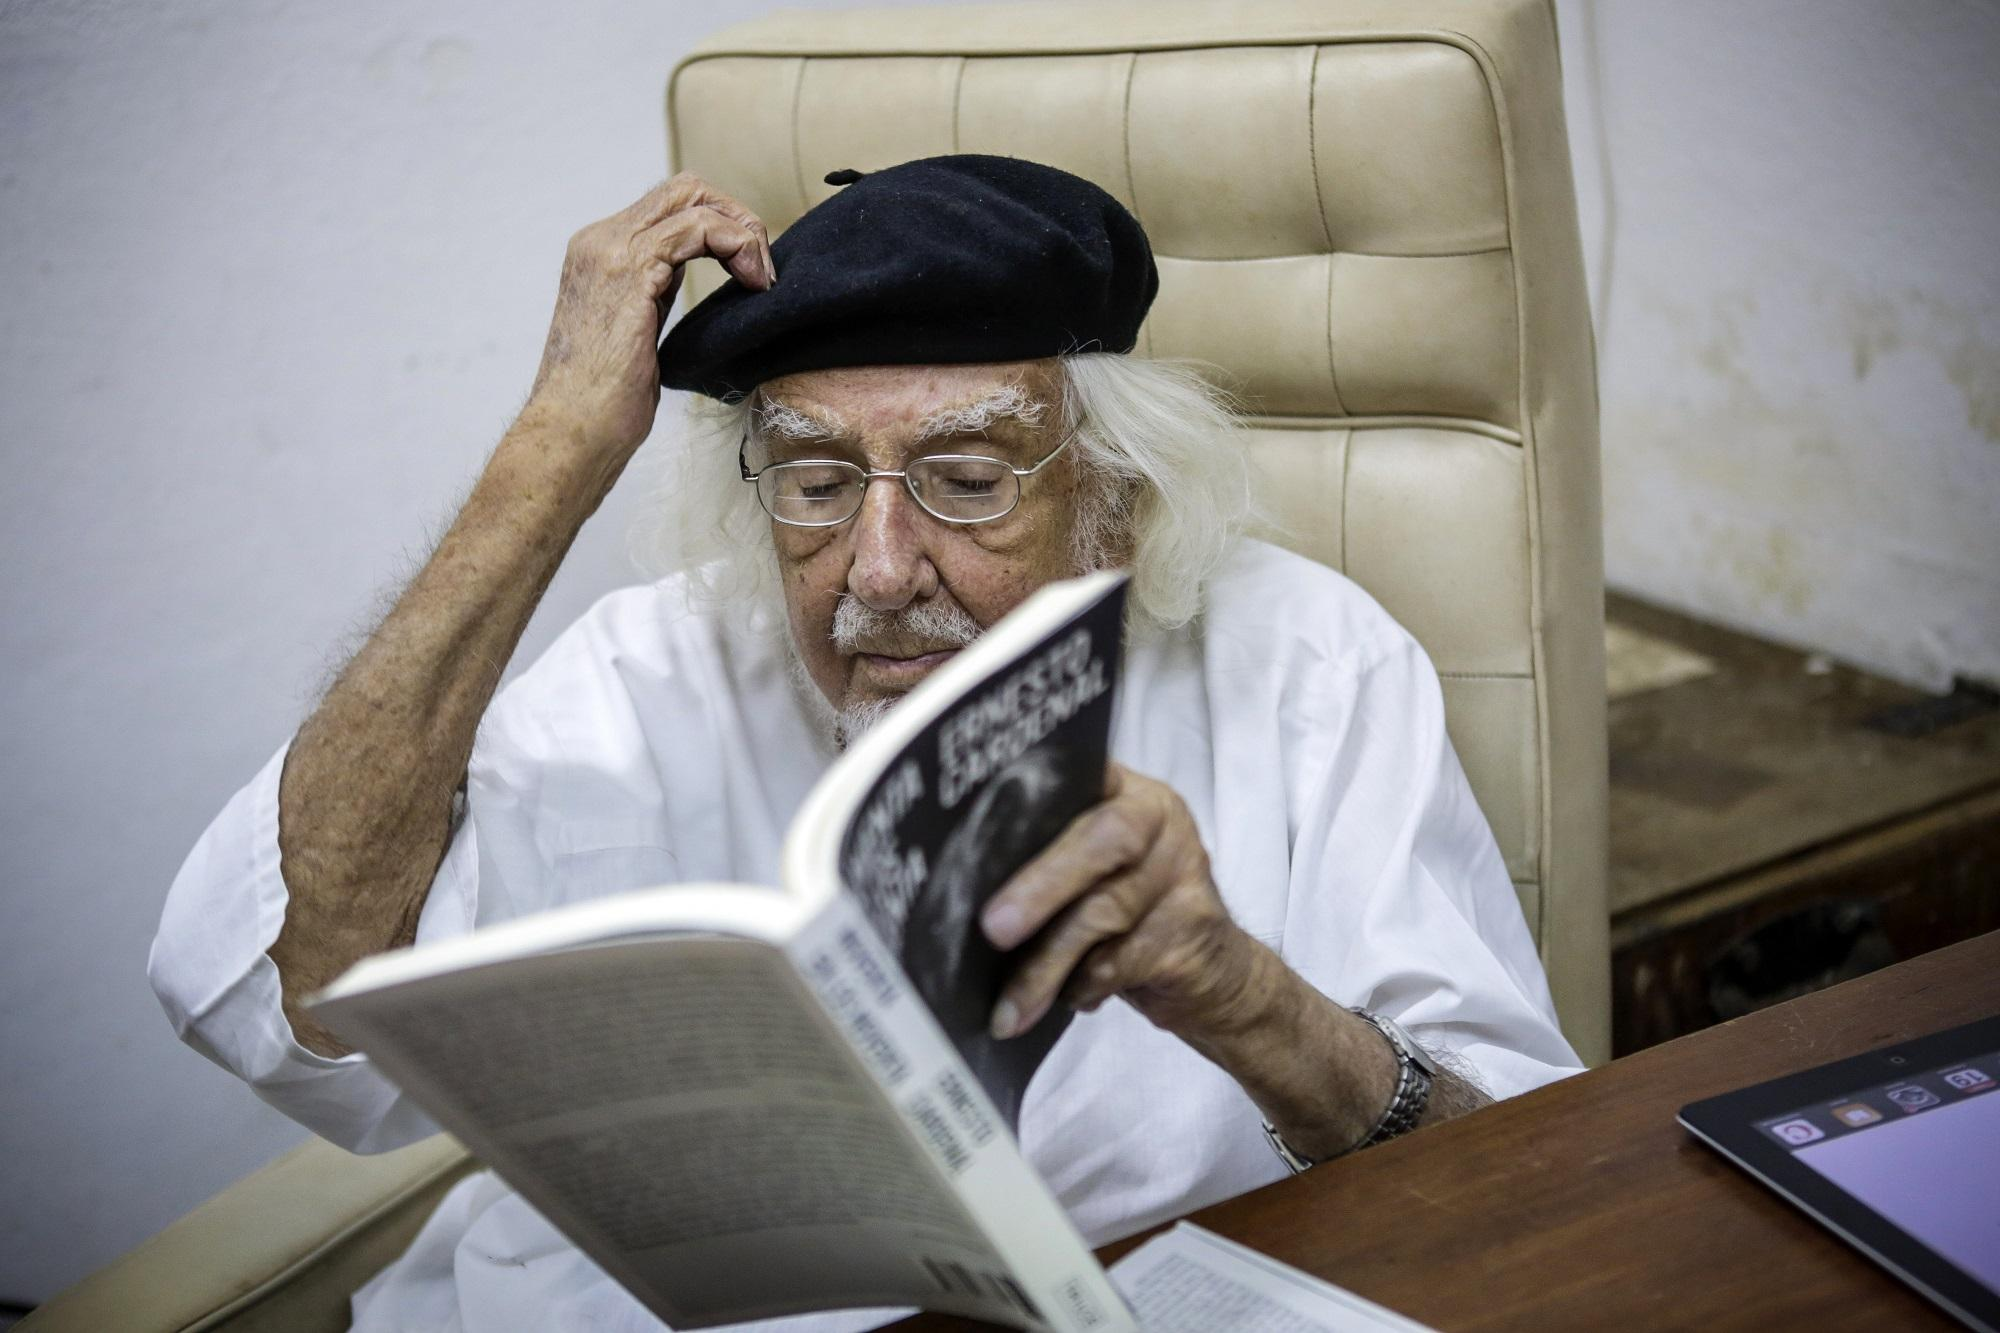 Nicaraguan Priest Ernesto Cardenal reads a book at his office in Managua on January 19, 2015. AFP photo by Inti Ocon.